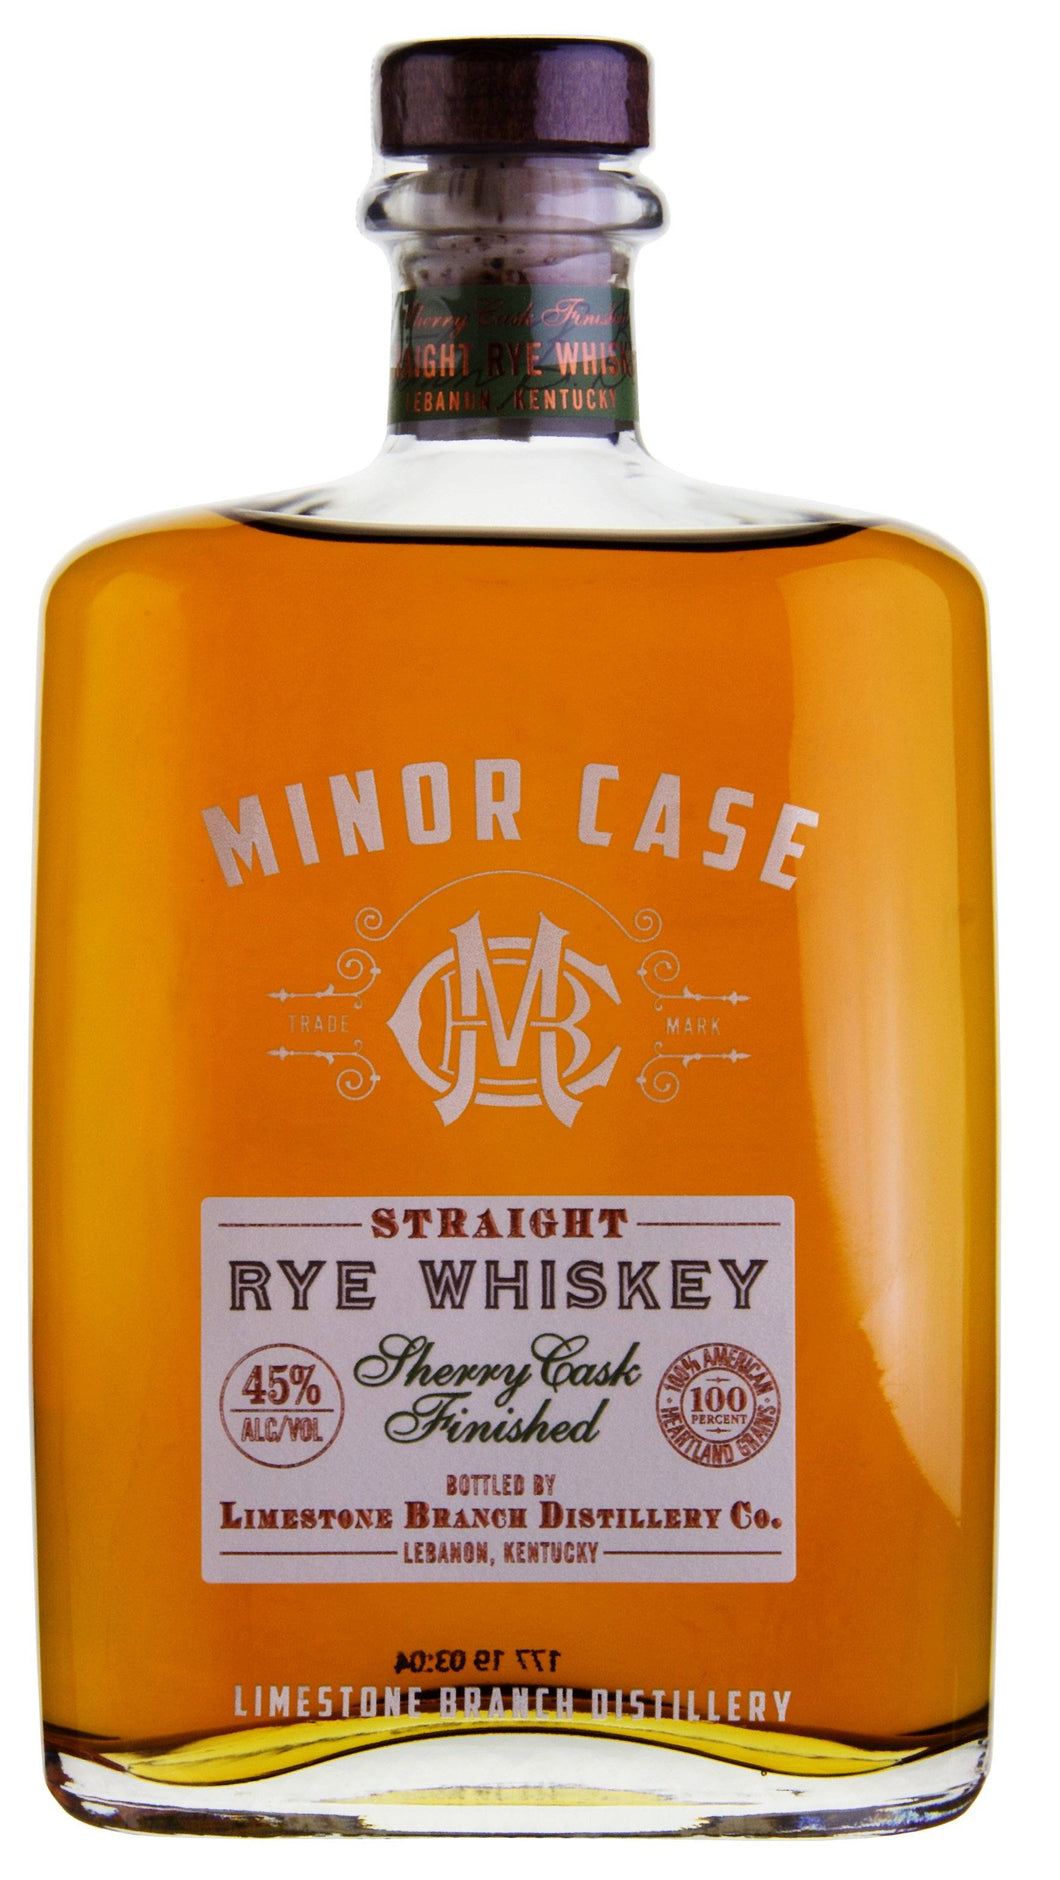 MINOR CASE Straight Rye Sherry Cask Finished Whiskey Trinkabenteuer GmbH